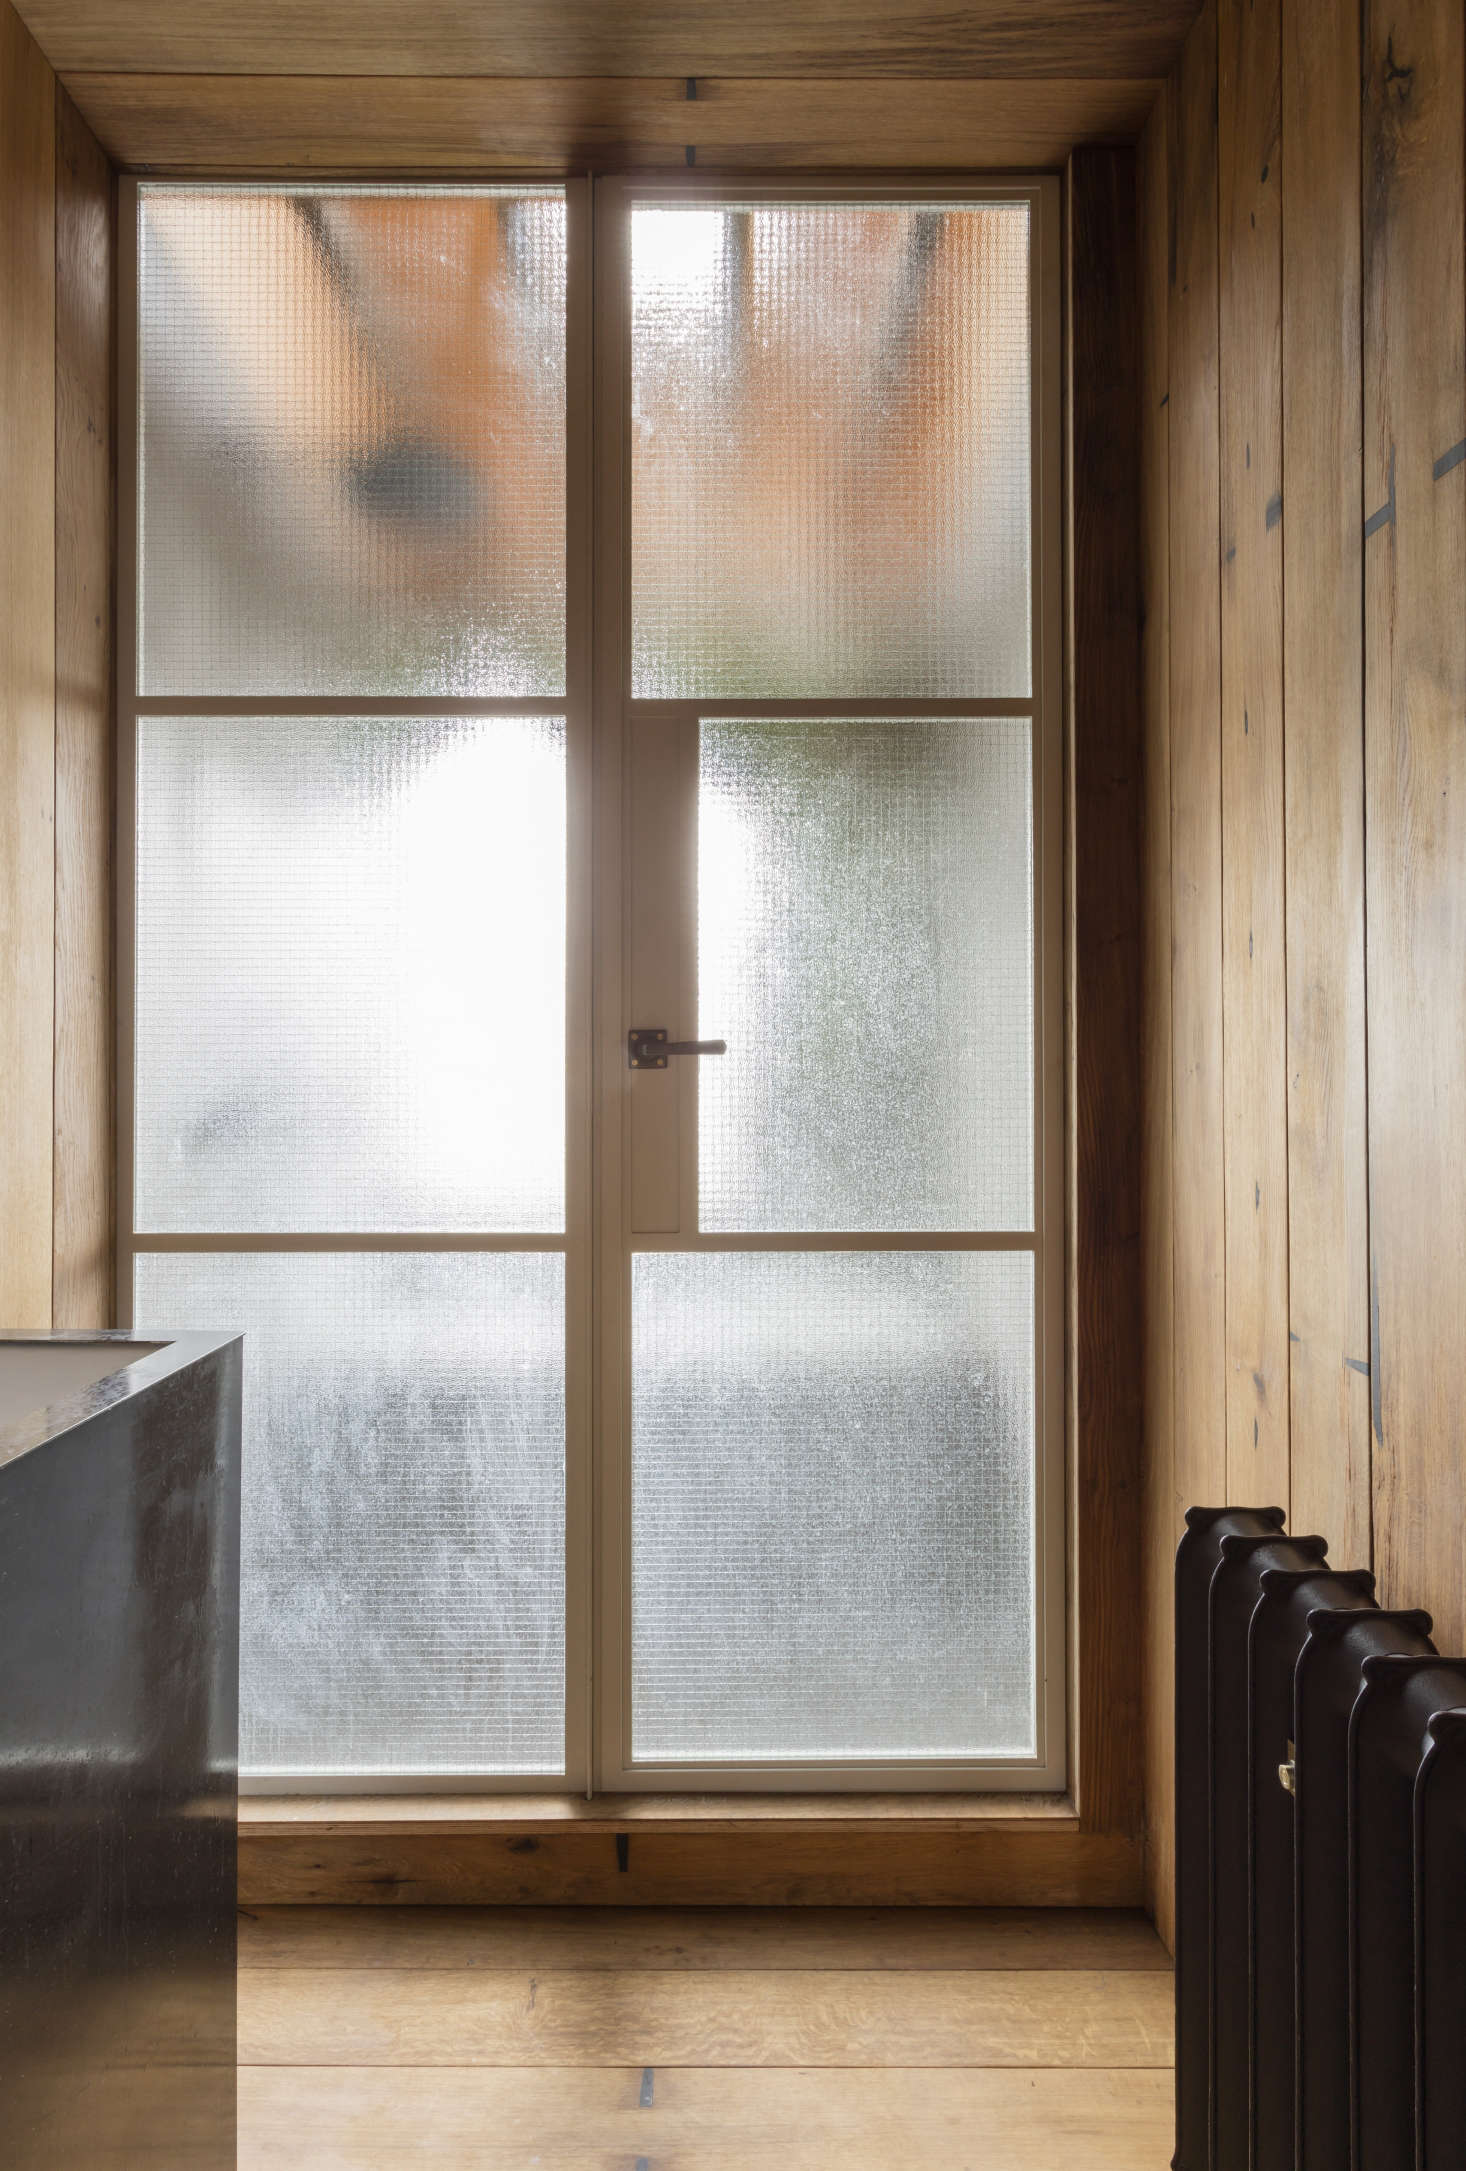 Architect Simon Astridge used fumed oak boards on the floor (and walls and ceiling) of his own London bathroom. SeeBathroom of the Week: A Japanese-Style Bath in London, Greenery Included for more.